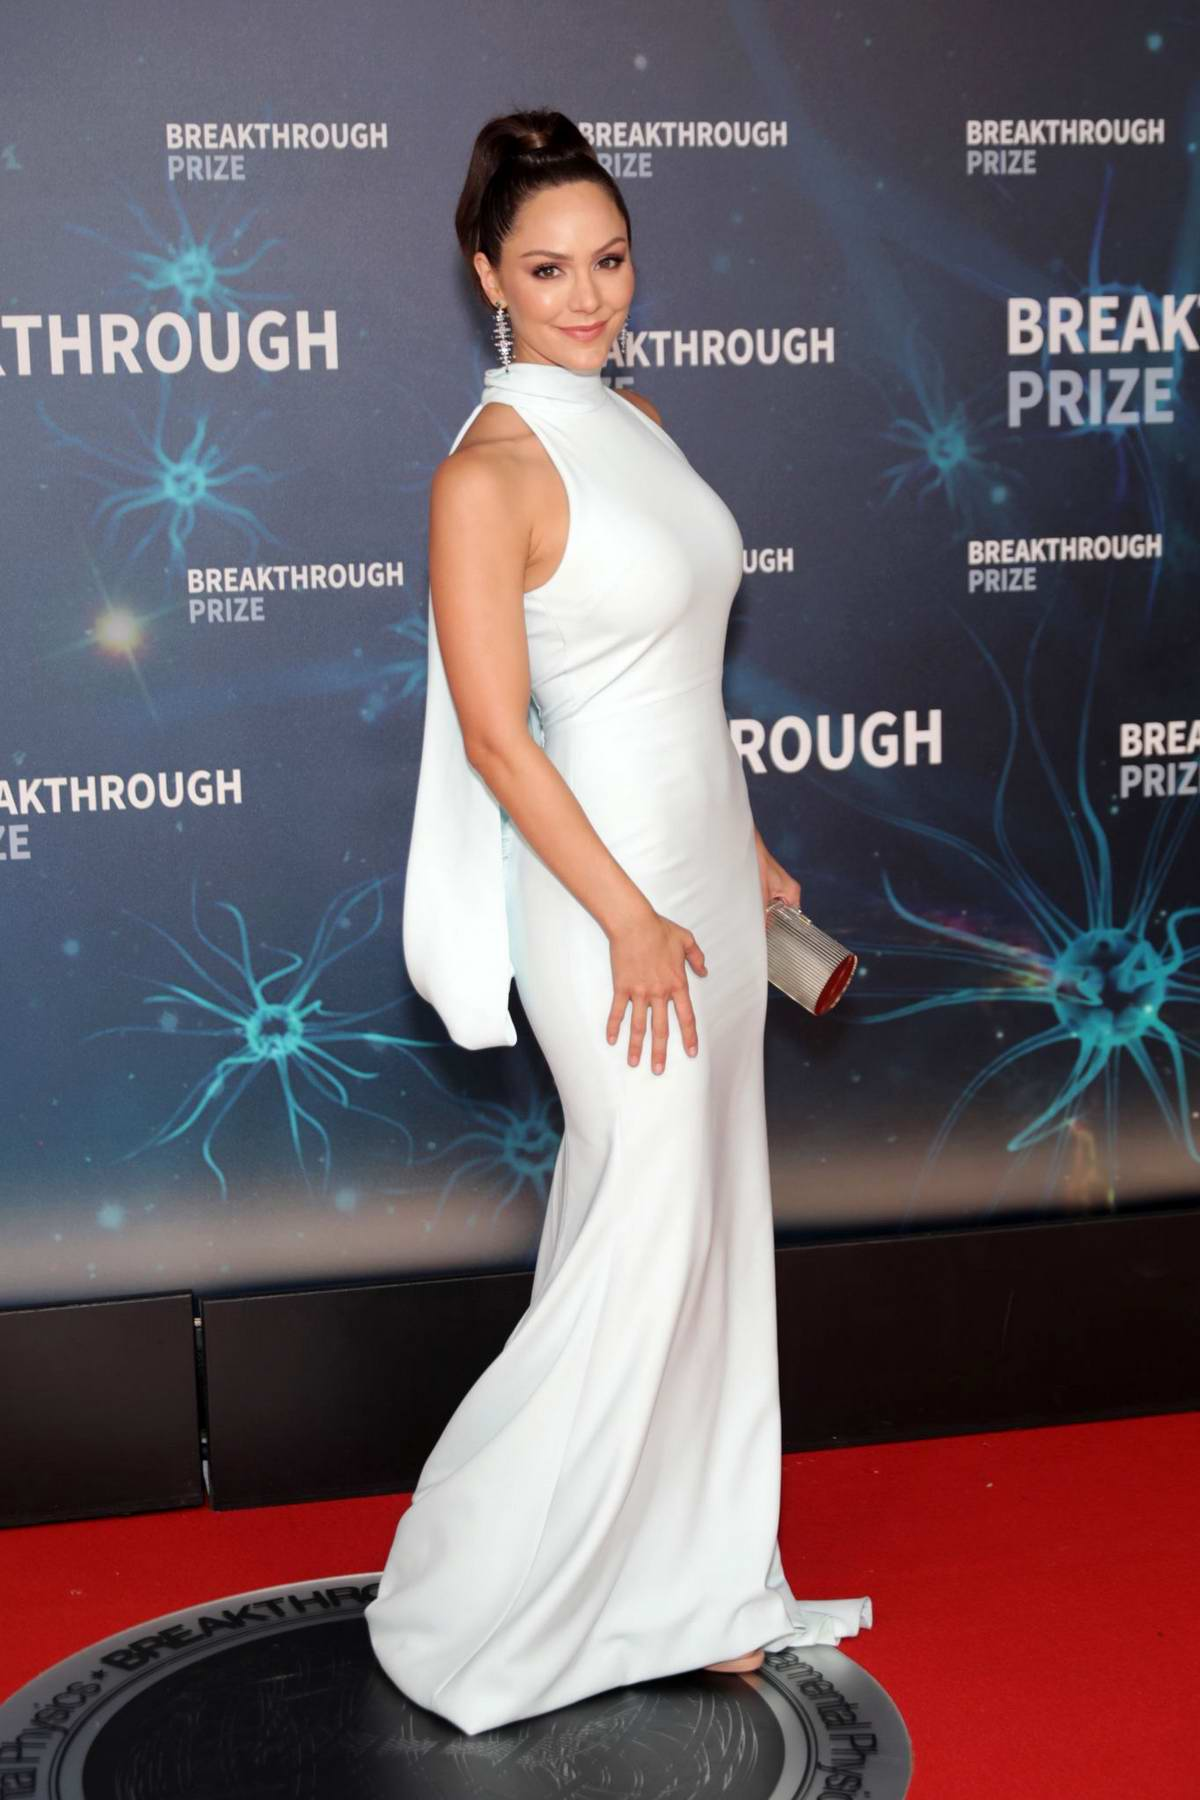 Katharine McPhee attends the 8th Annual Breakthrough Prize Ceremony in Mountain View, California